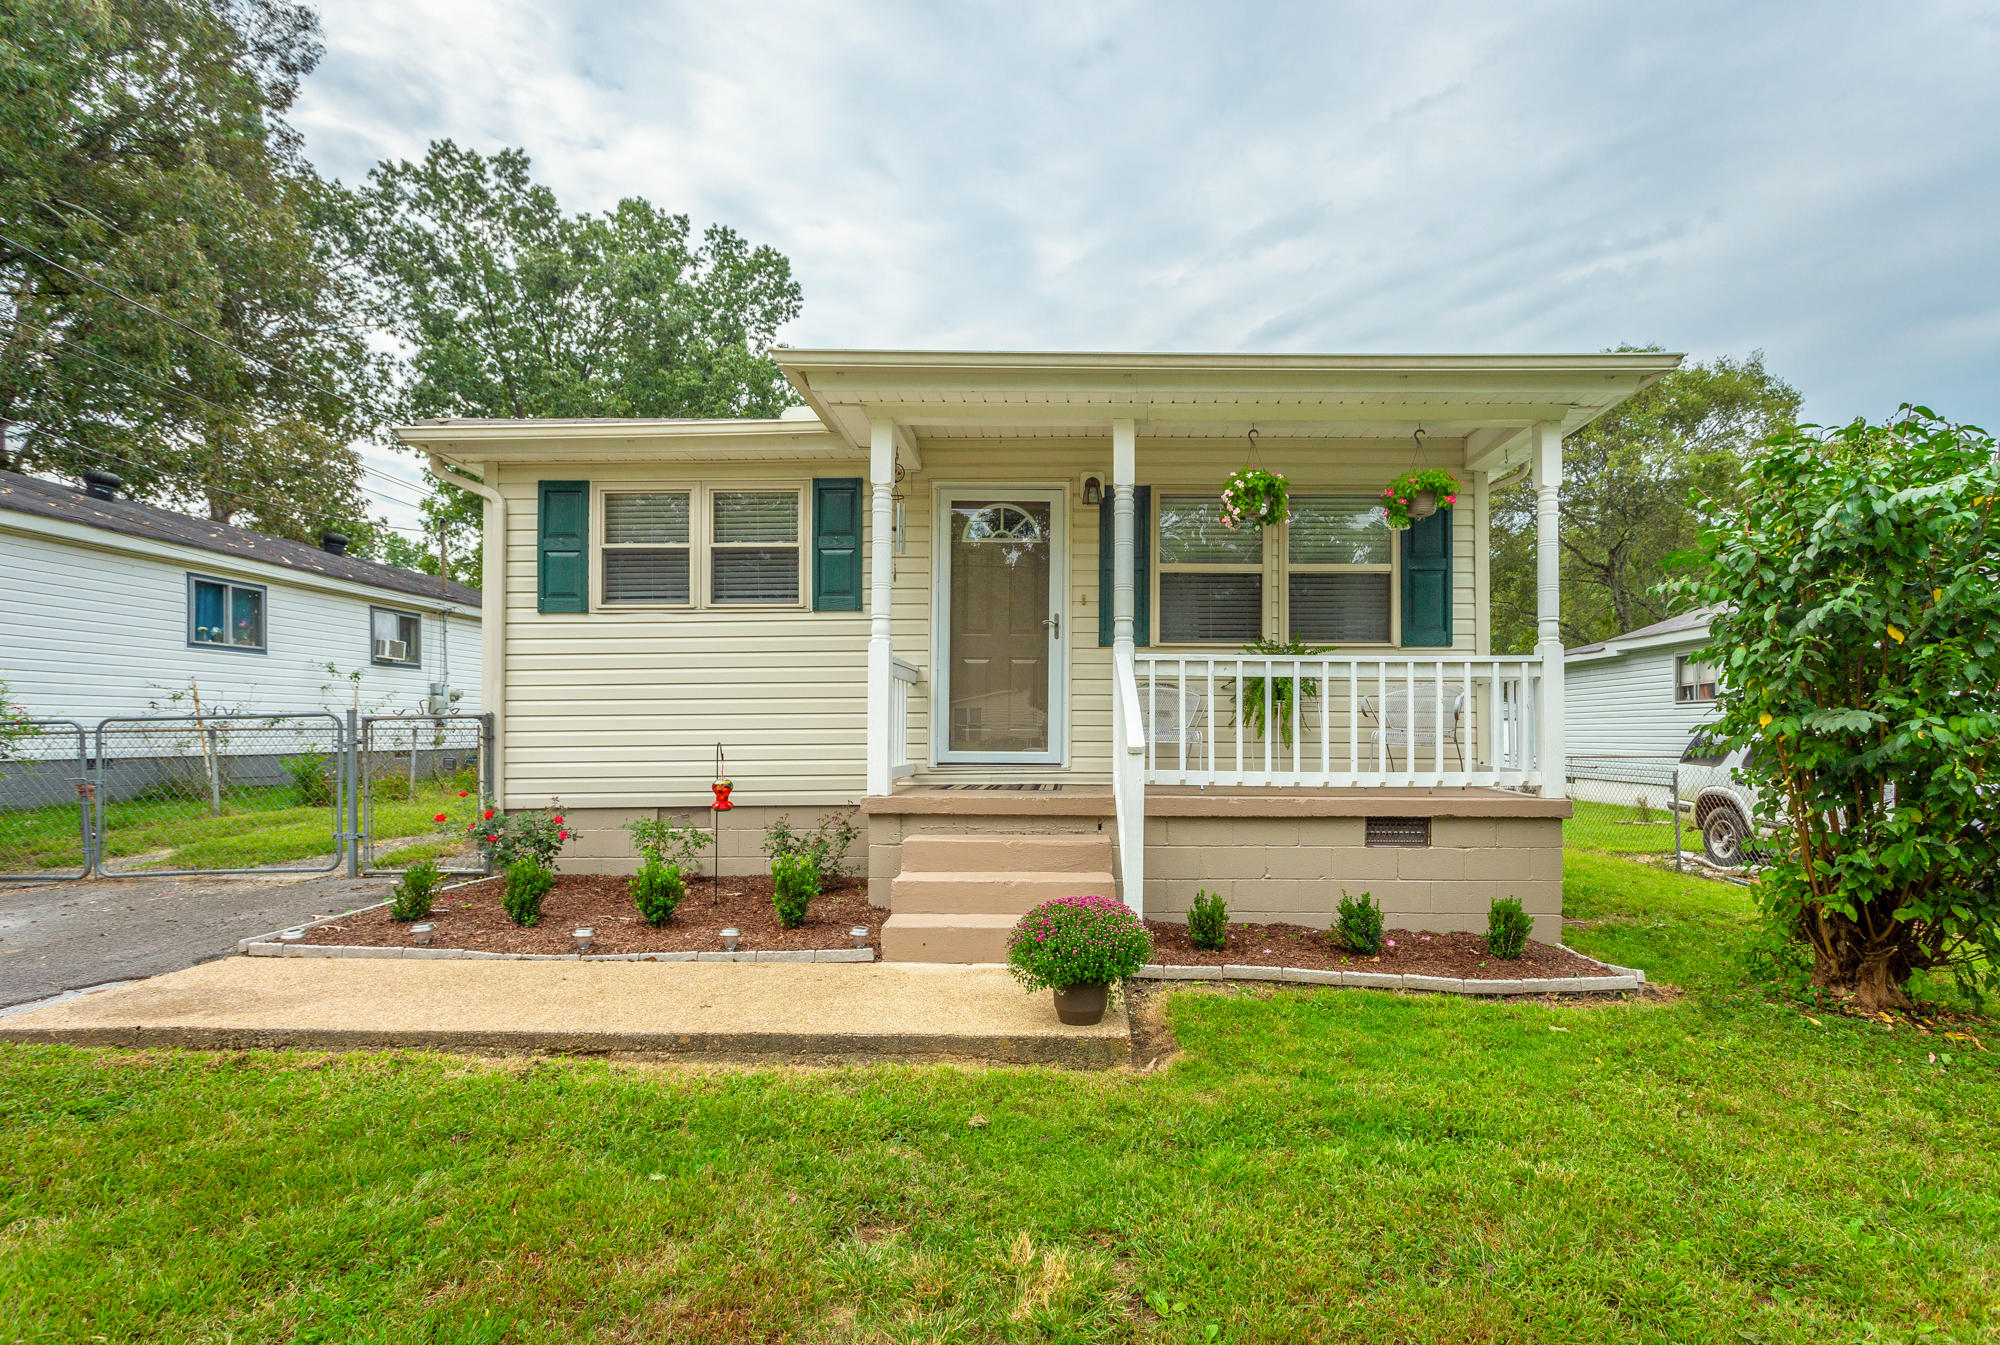 6012 Wentworth Ave, Chattanooga, TN 37412